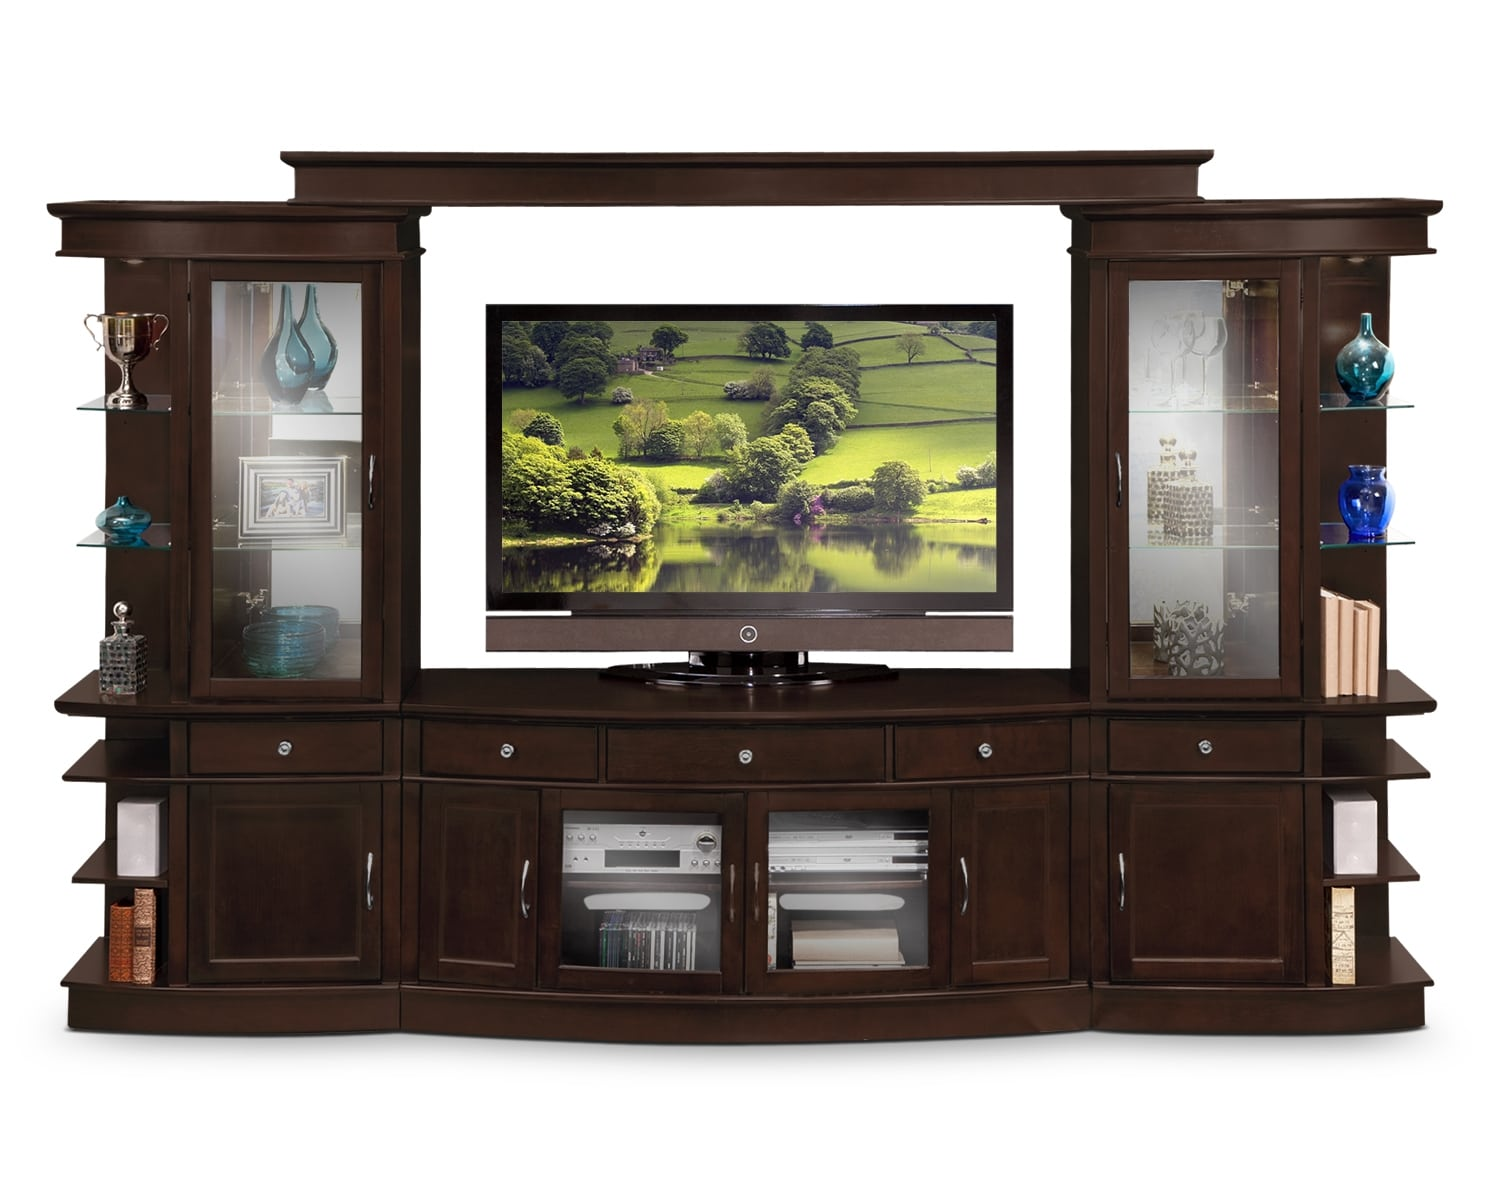 Entertainment Furniture - The Greenbriar Collection - 4 Pc. Entertainment Wall Unit